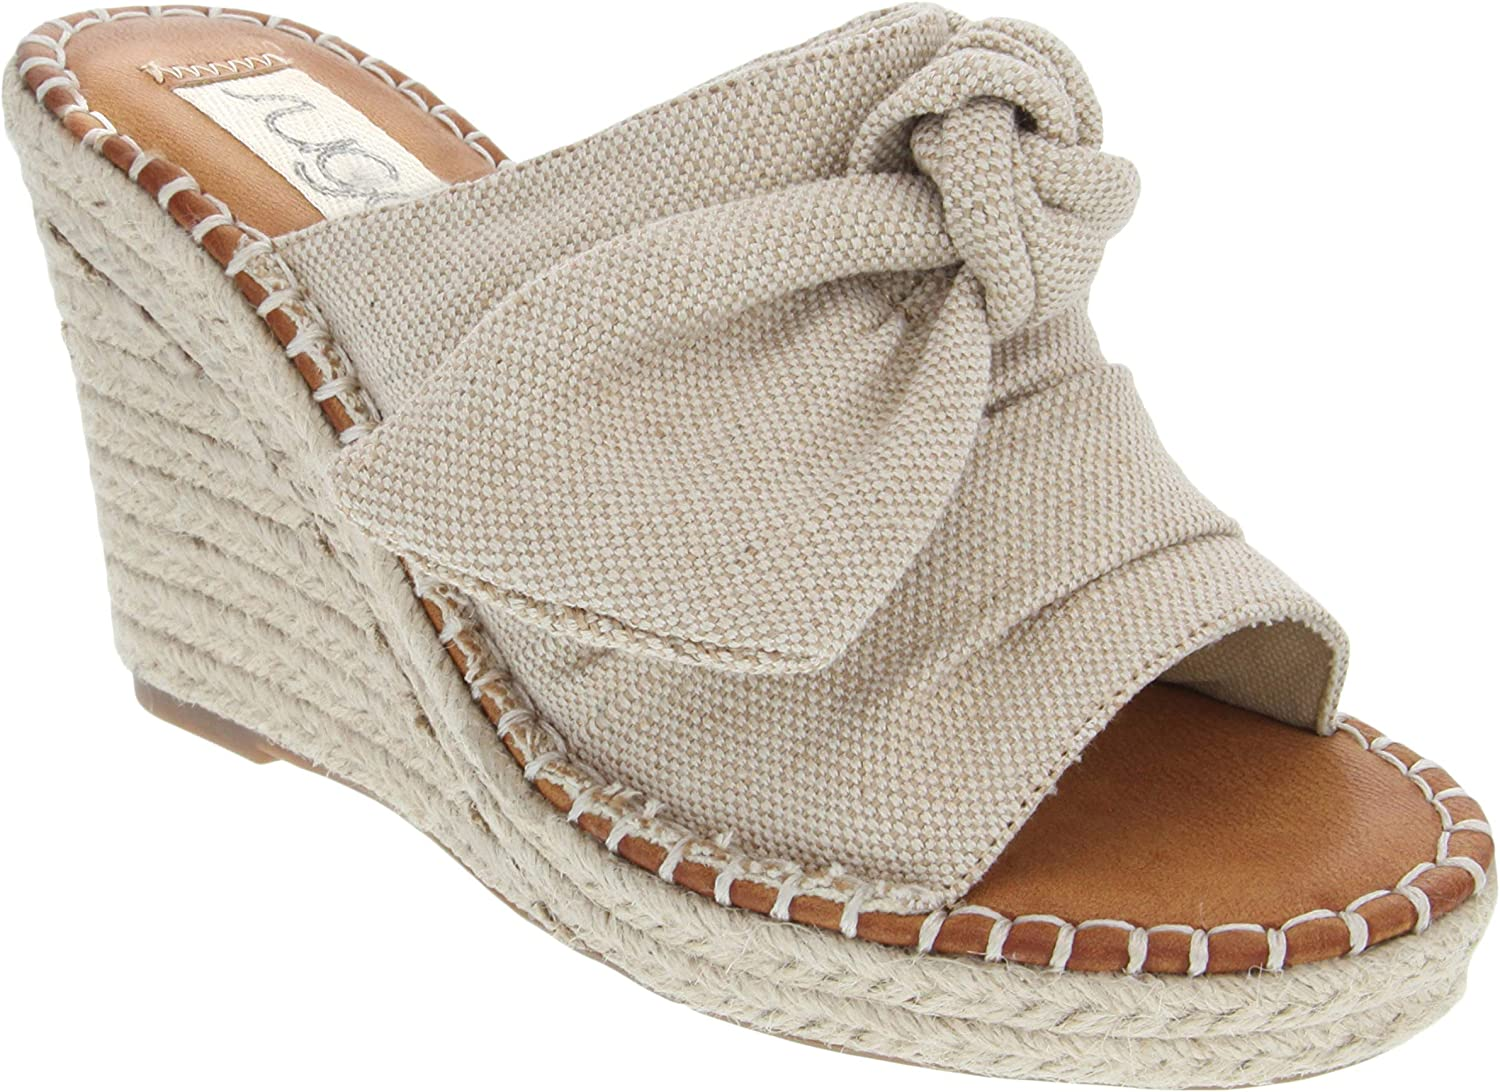 Sugar Women's Hundreds Espadrille Wedge Sandals with Knotty Bow Detail